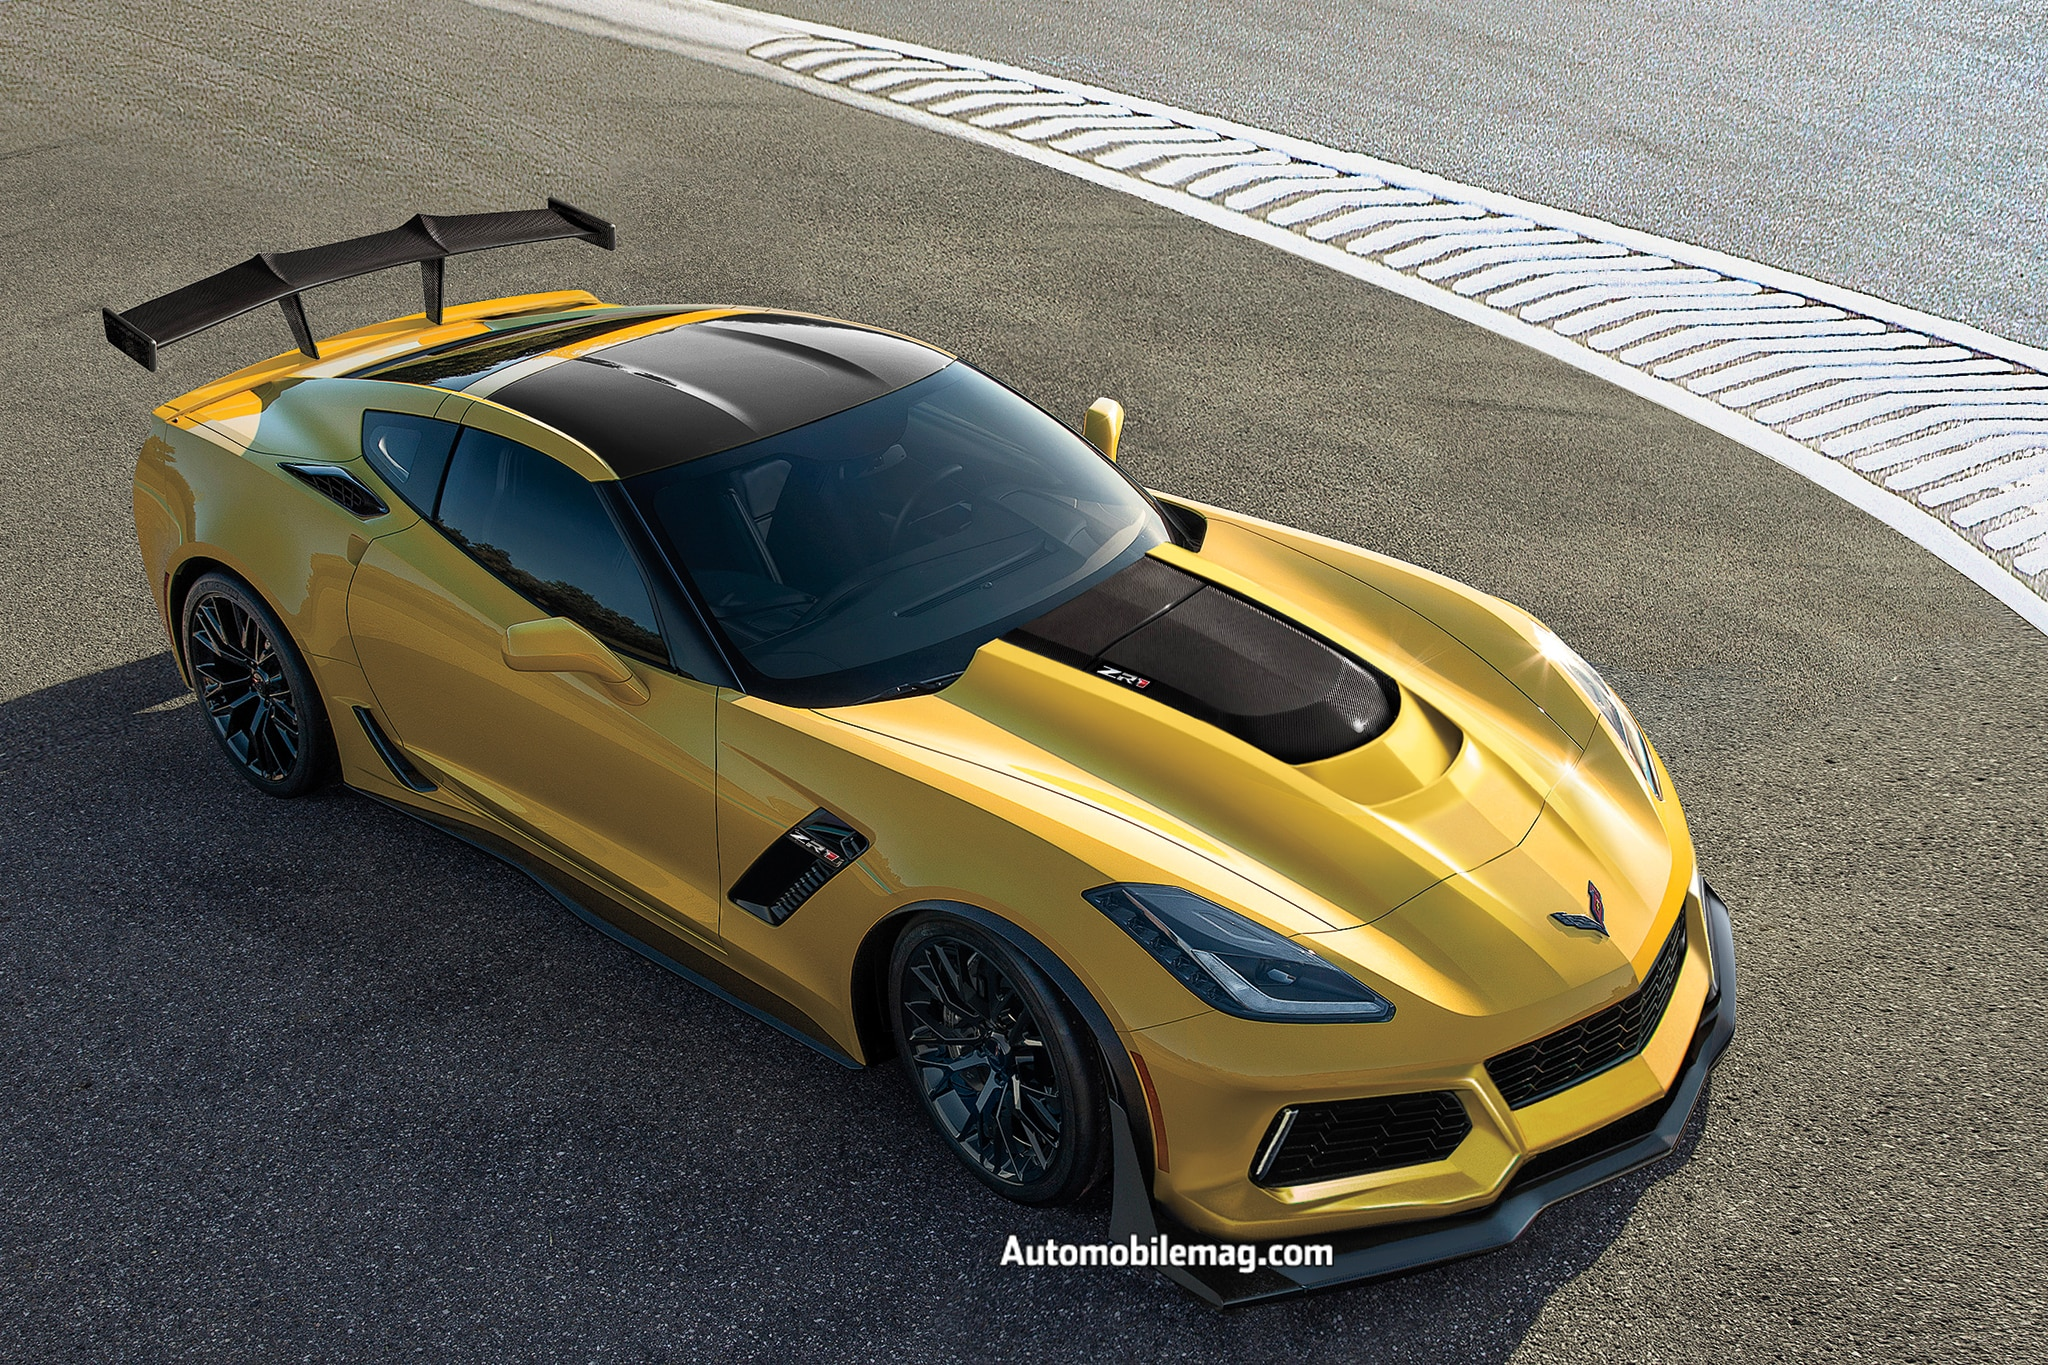 2019 chevrolet corvette c8 zora and c7 zr1 what to expect automobile magazine. Black Bedroom Furniture Sets. Home Design Ideas